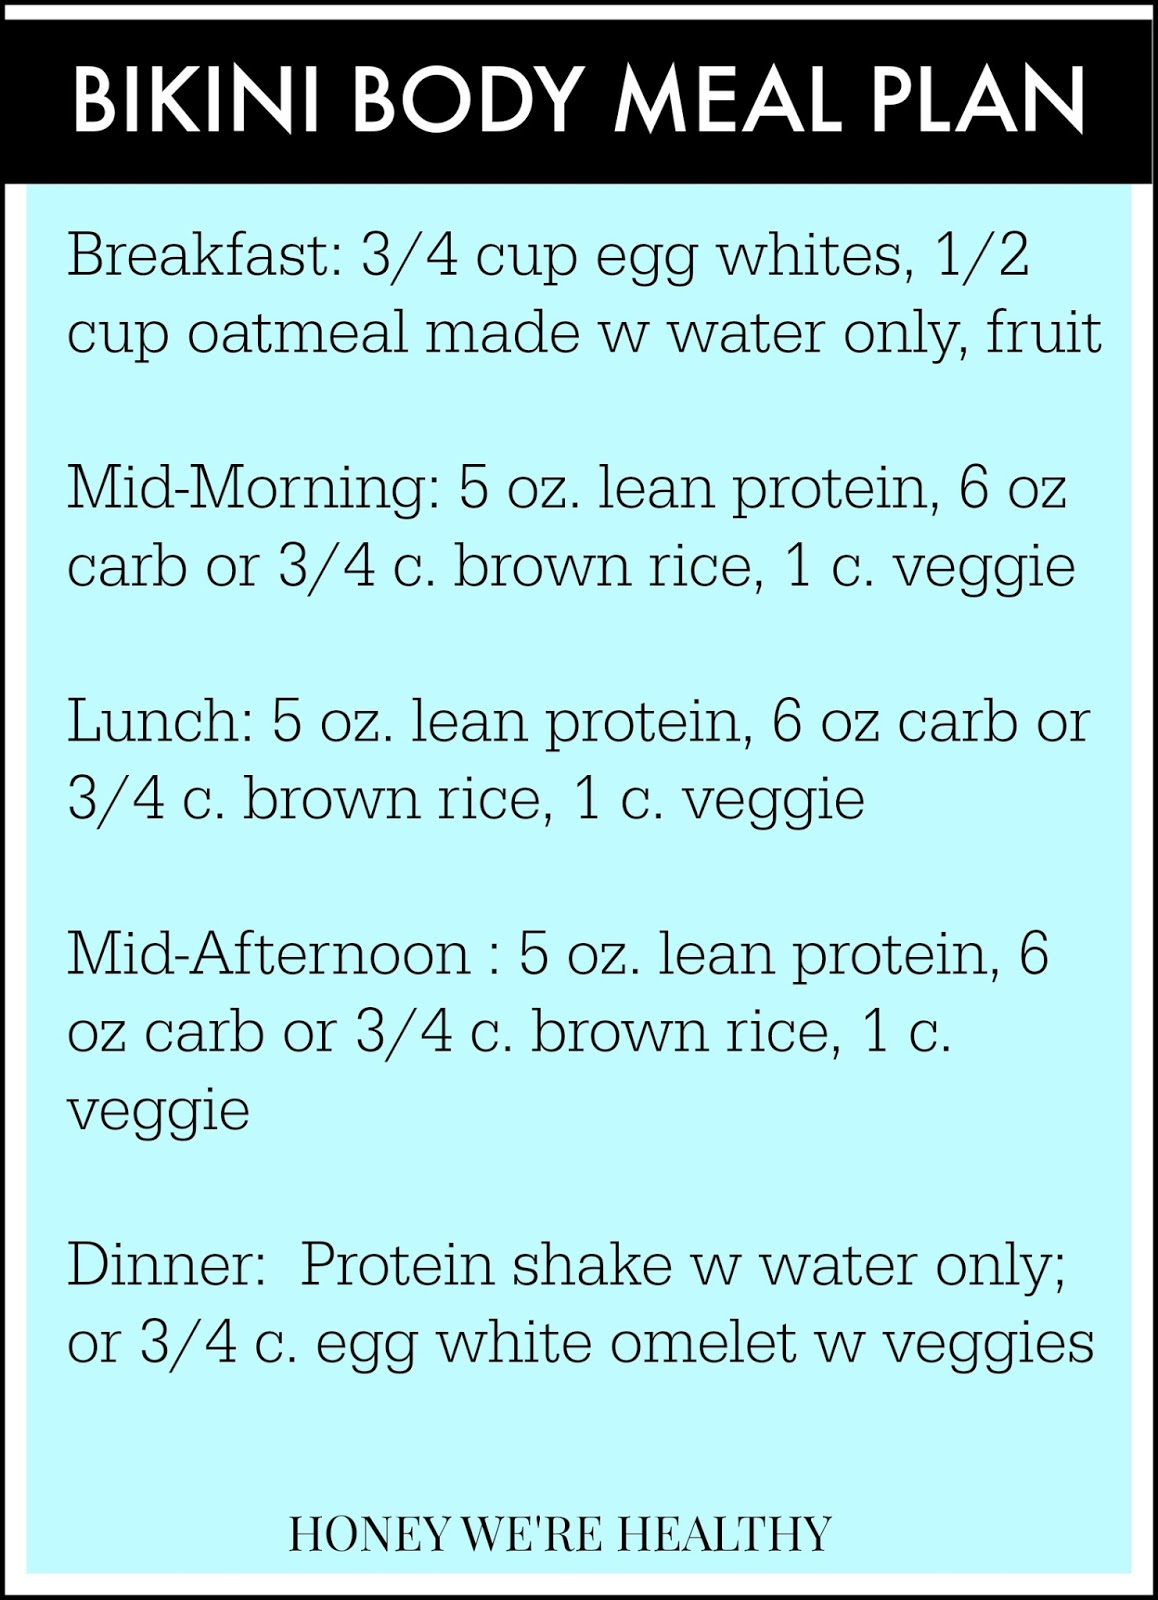 12 Weeks Out // My Bikini Contest Meal Plan